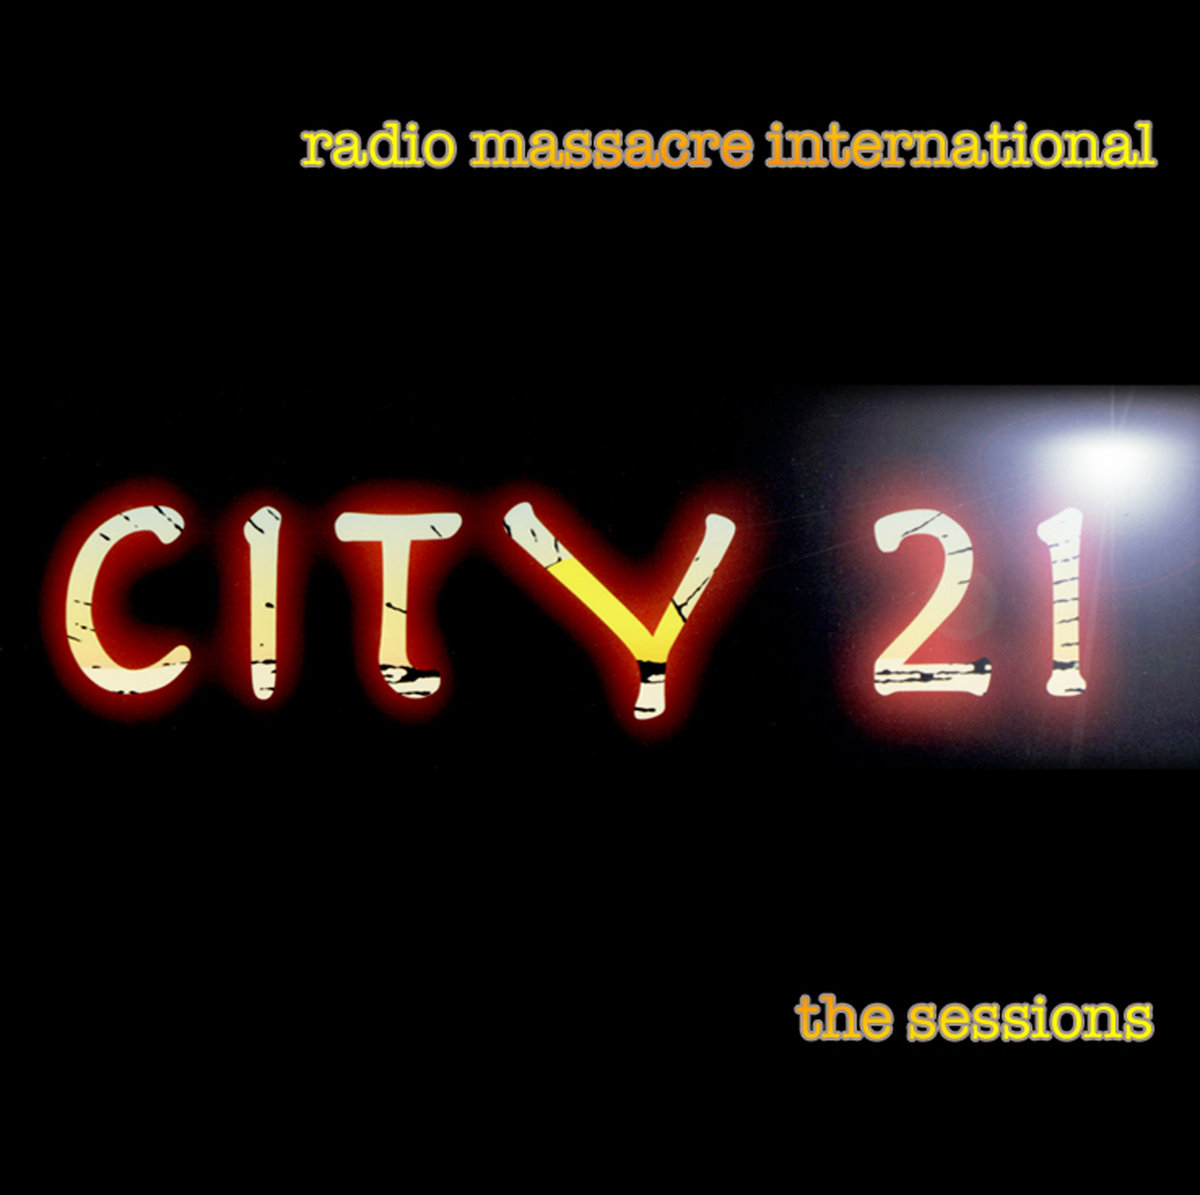 city 21: the sessions